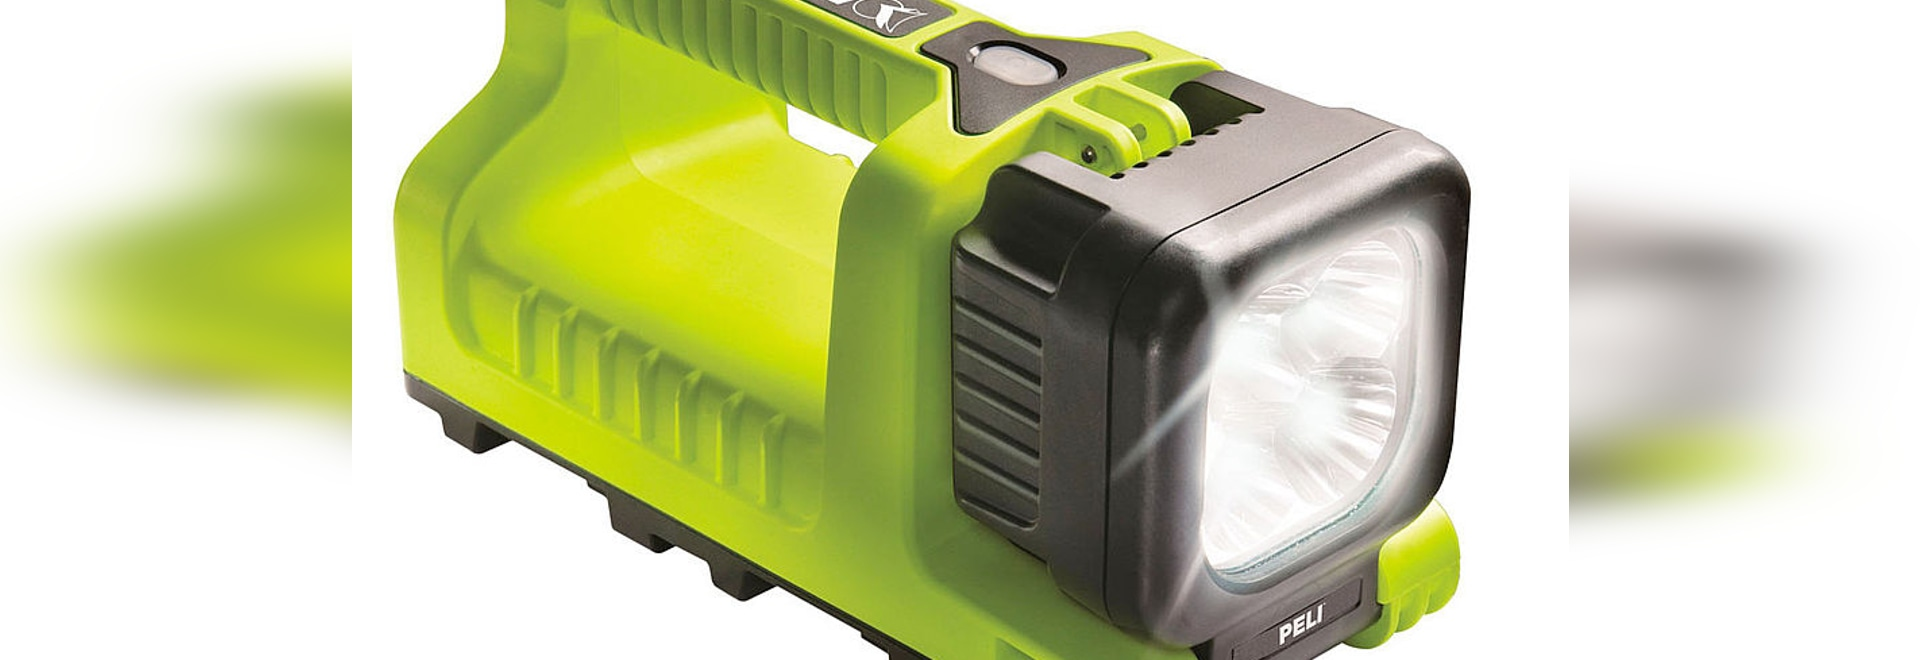 Peli™ Introduces the 9415Z0 LED, its most Powerful Rechargeable Lantern approved by ATEX Zone 0 (Cat. 1)